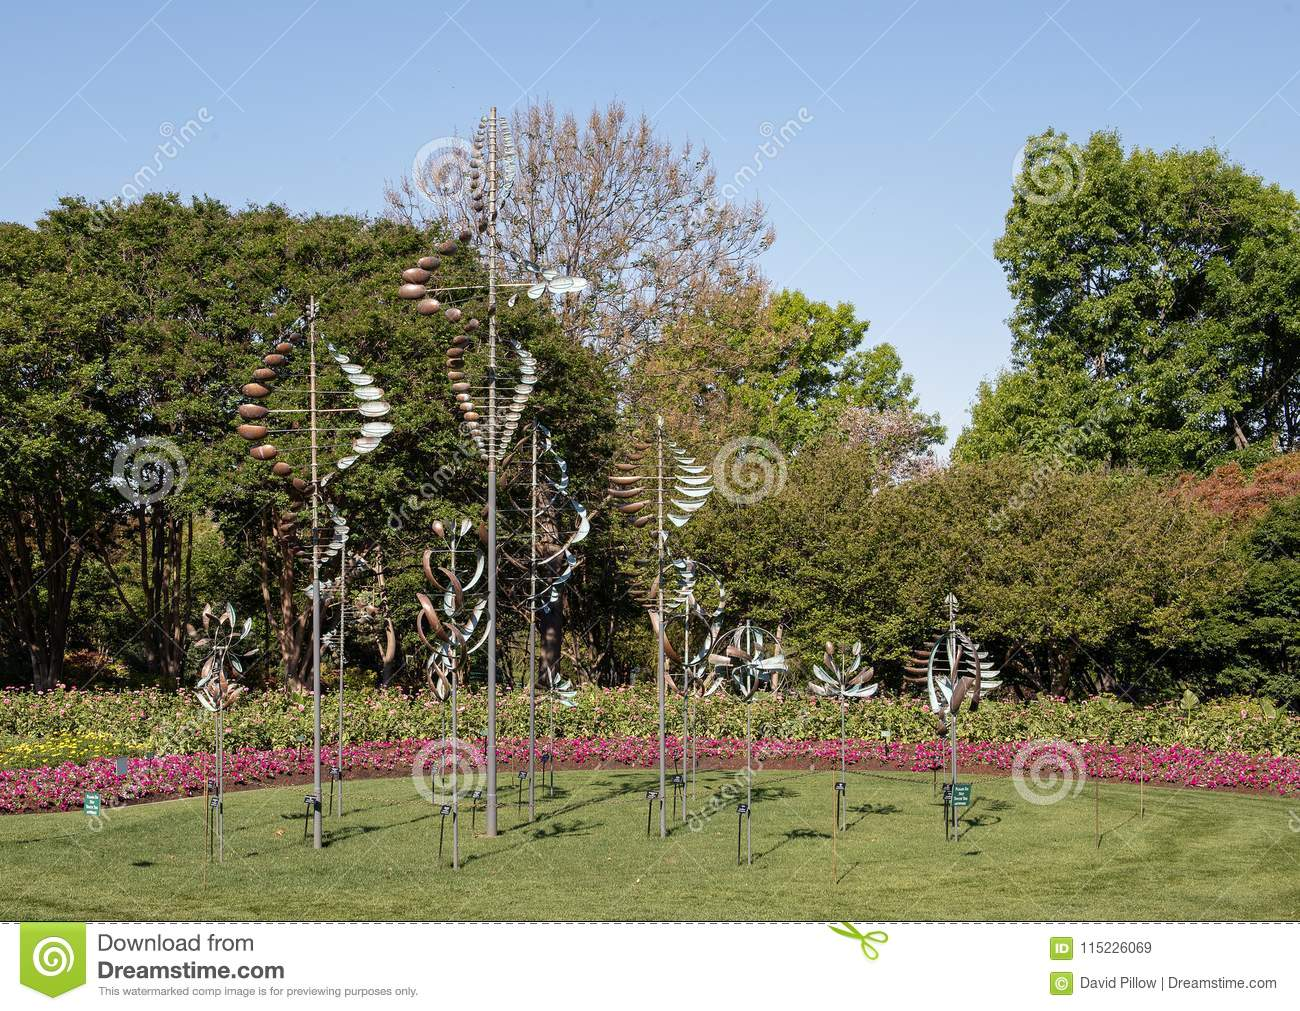 Windsculptures And Flower Beds, Dallas Arboretum And Botanical ...